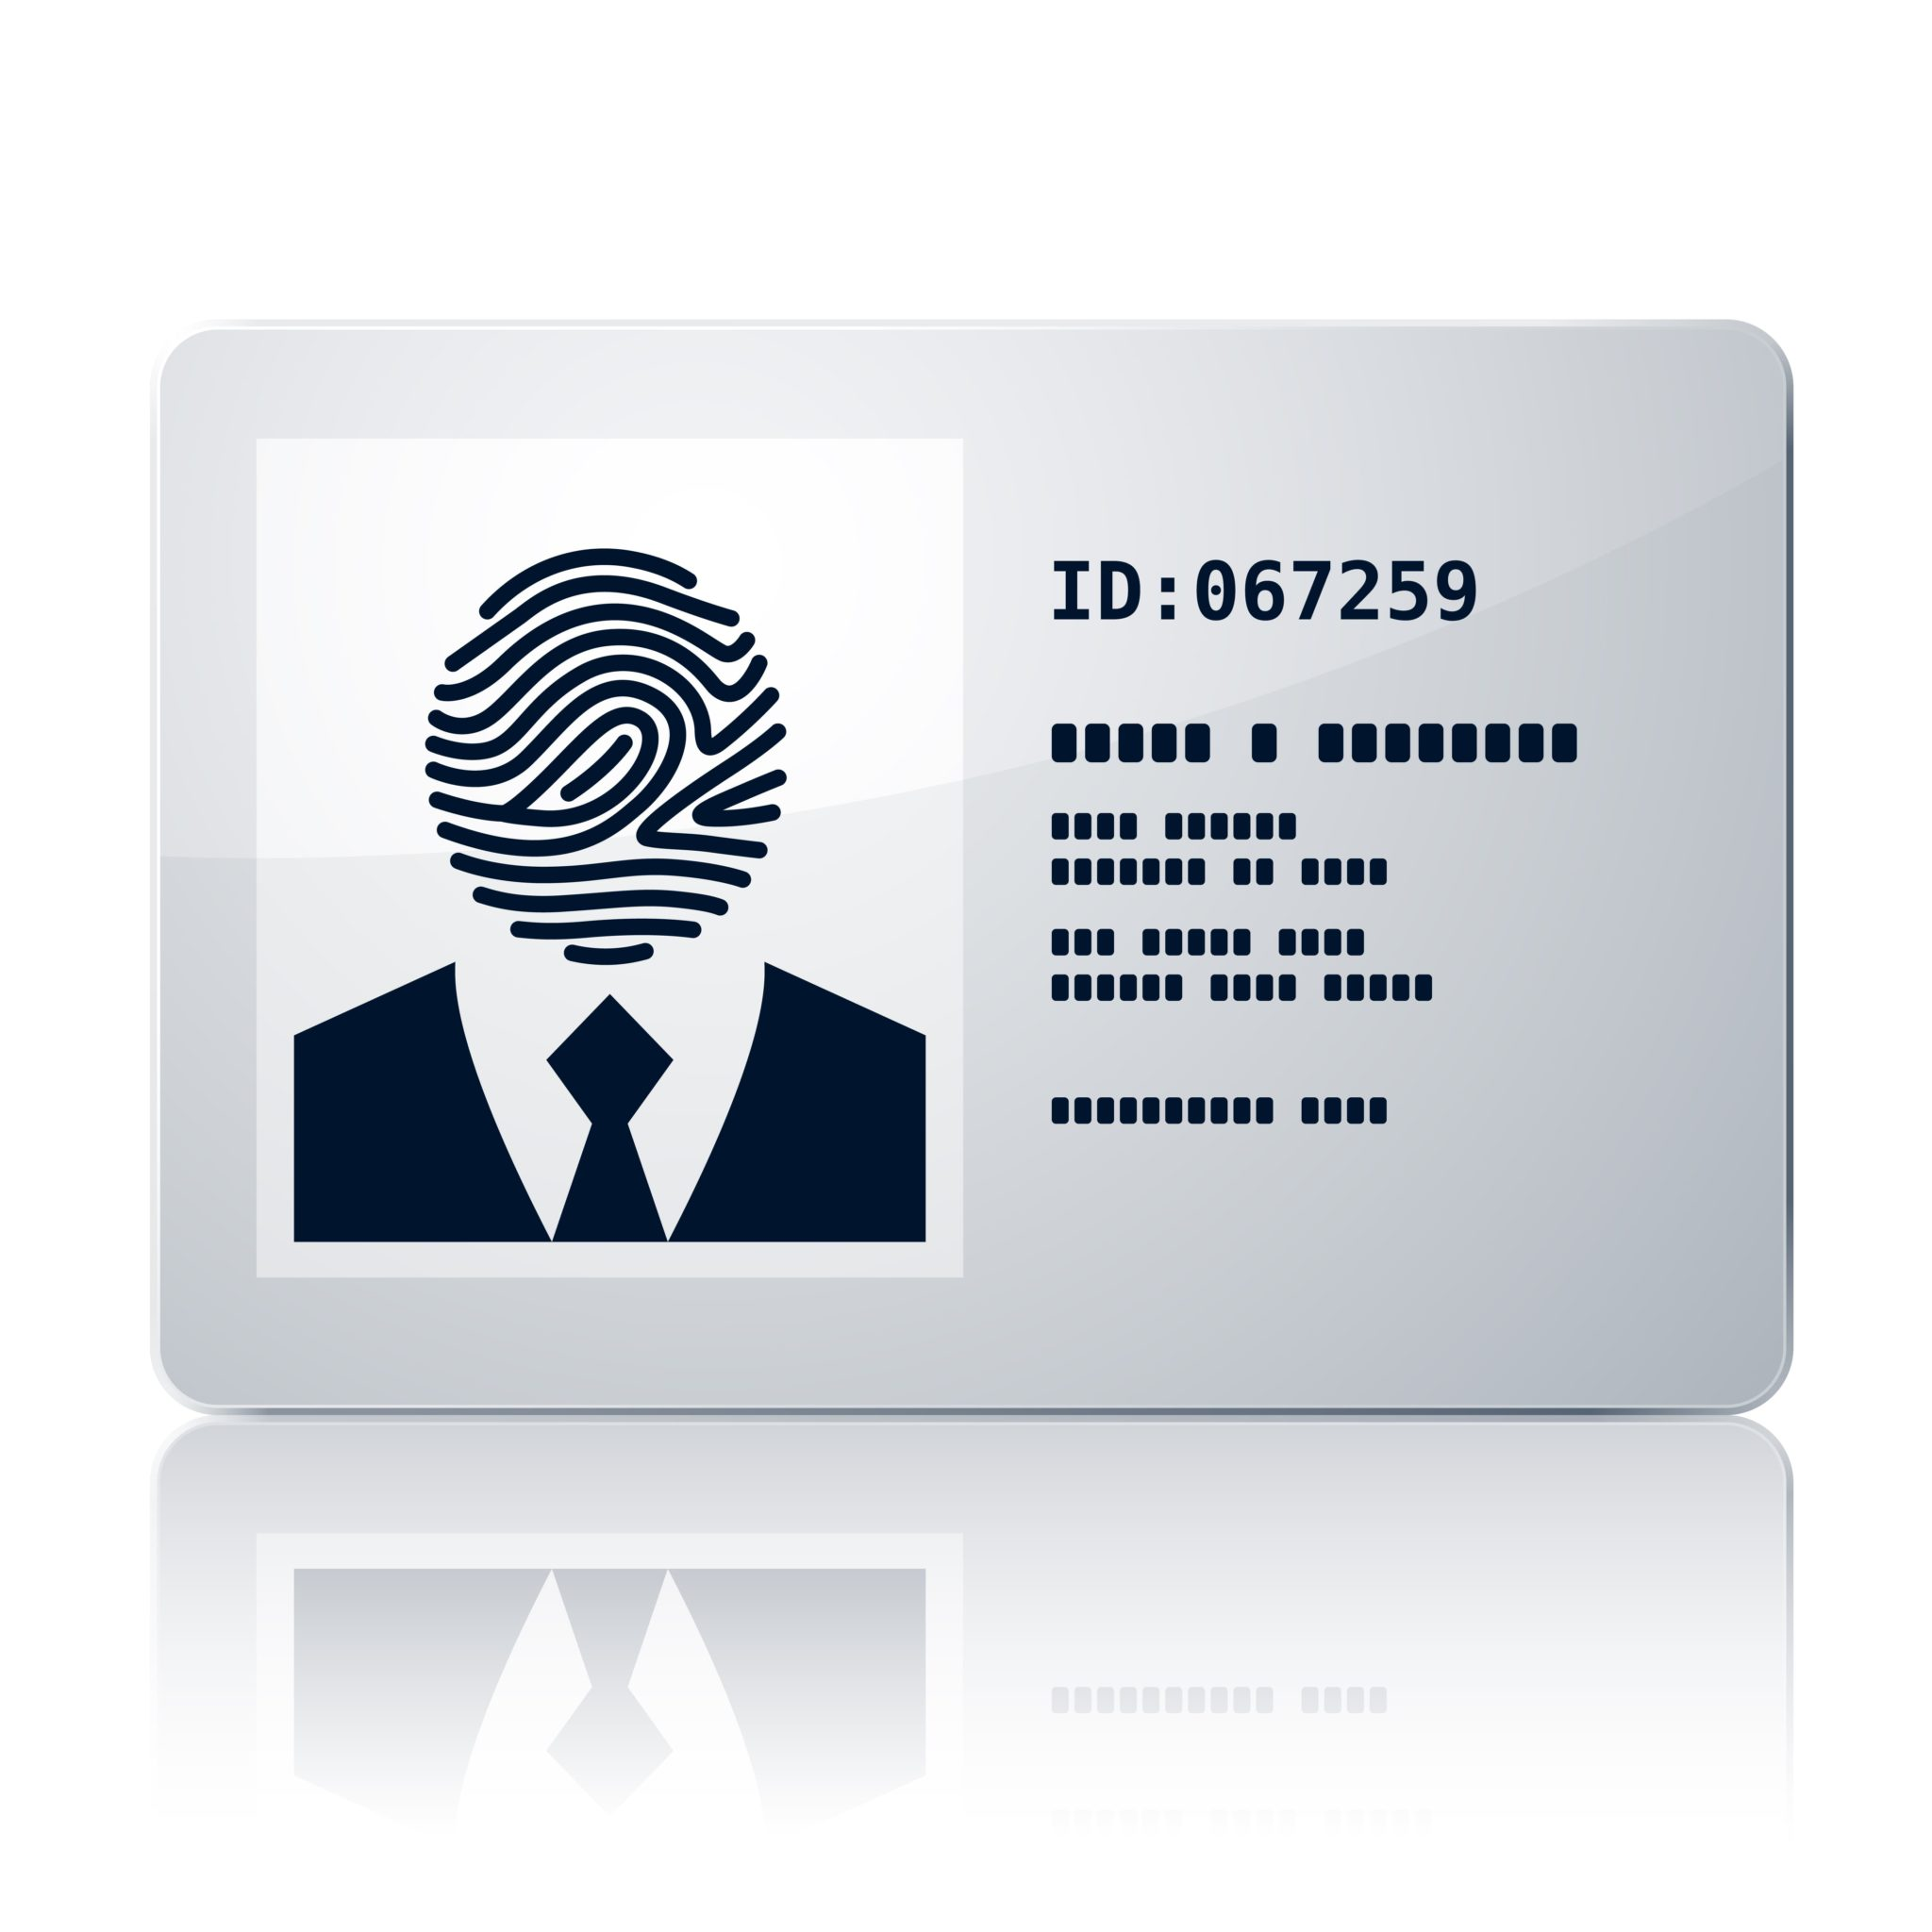 Voter ID is not the imposition of a federal ID requirement